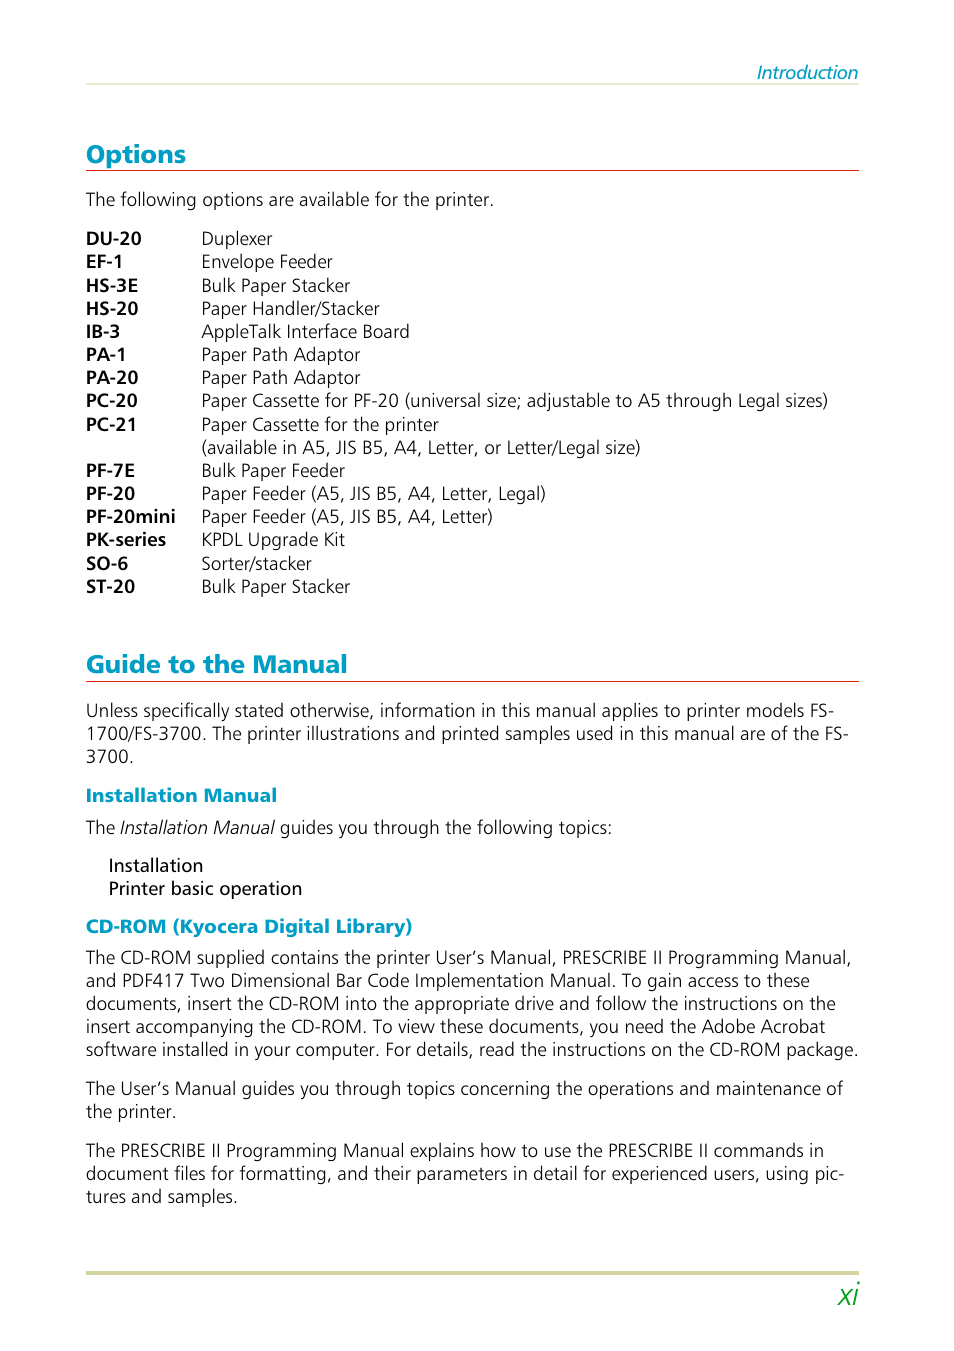 Options, Guide to the manual | Kyocera FS-3700 User Manual | Page 12 / 116